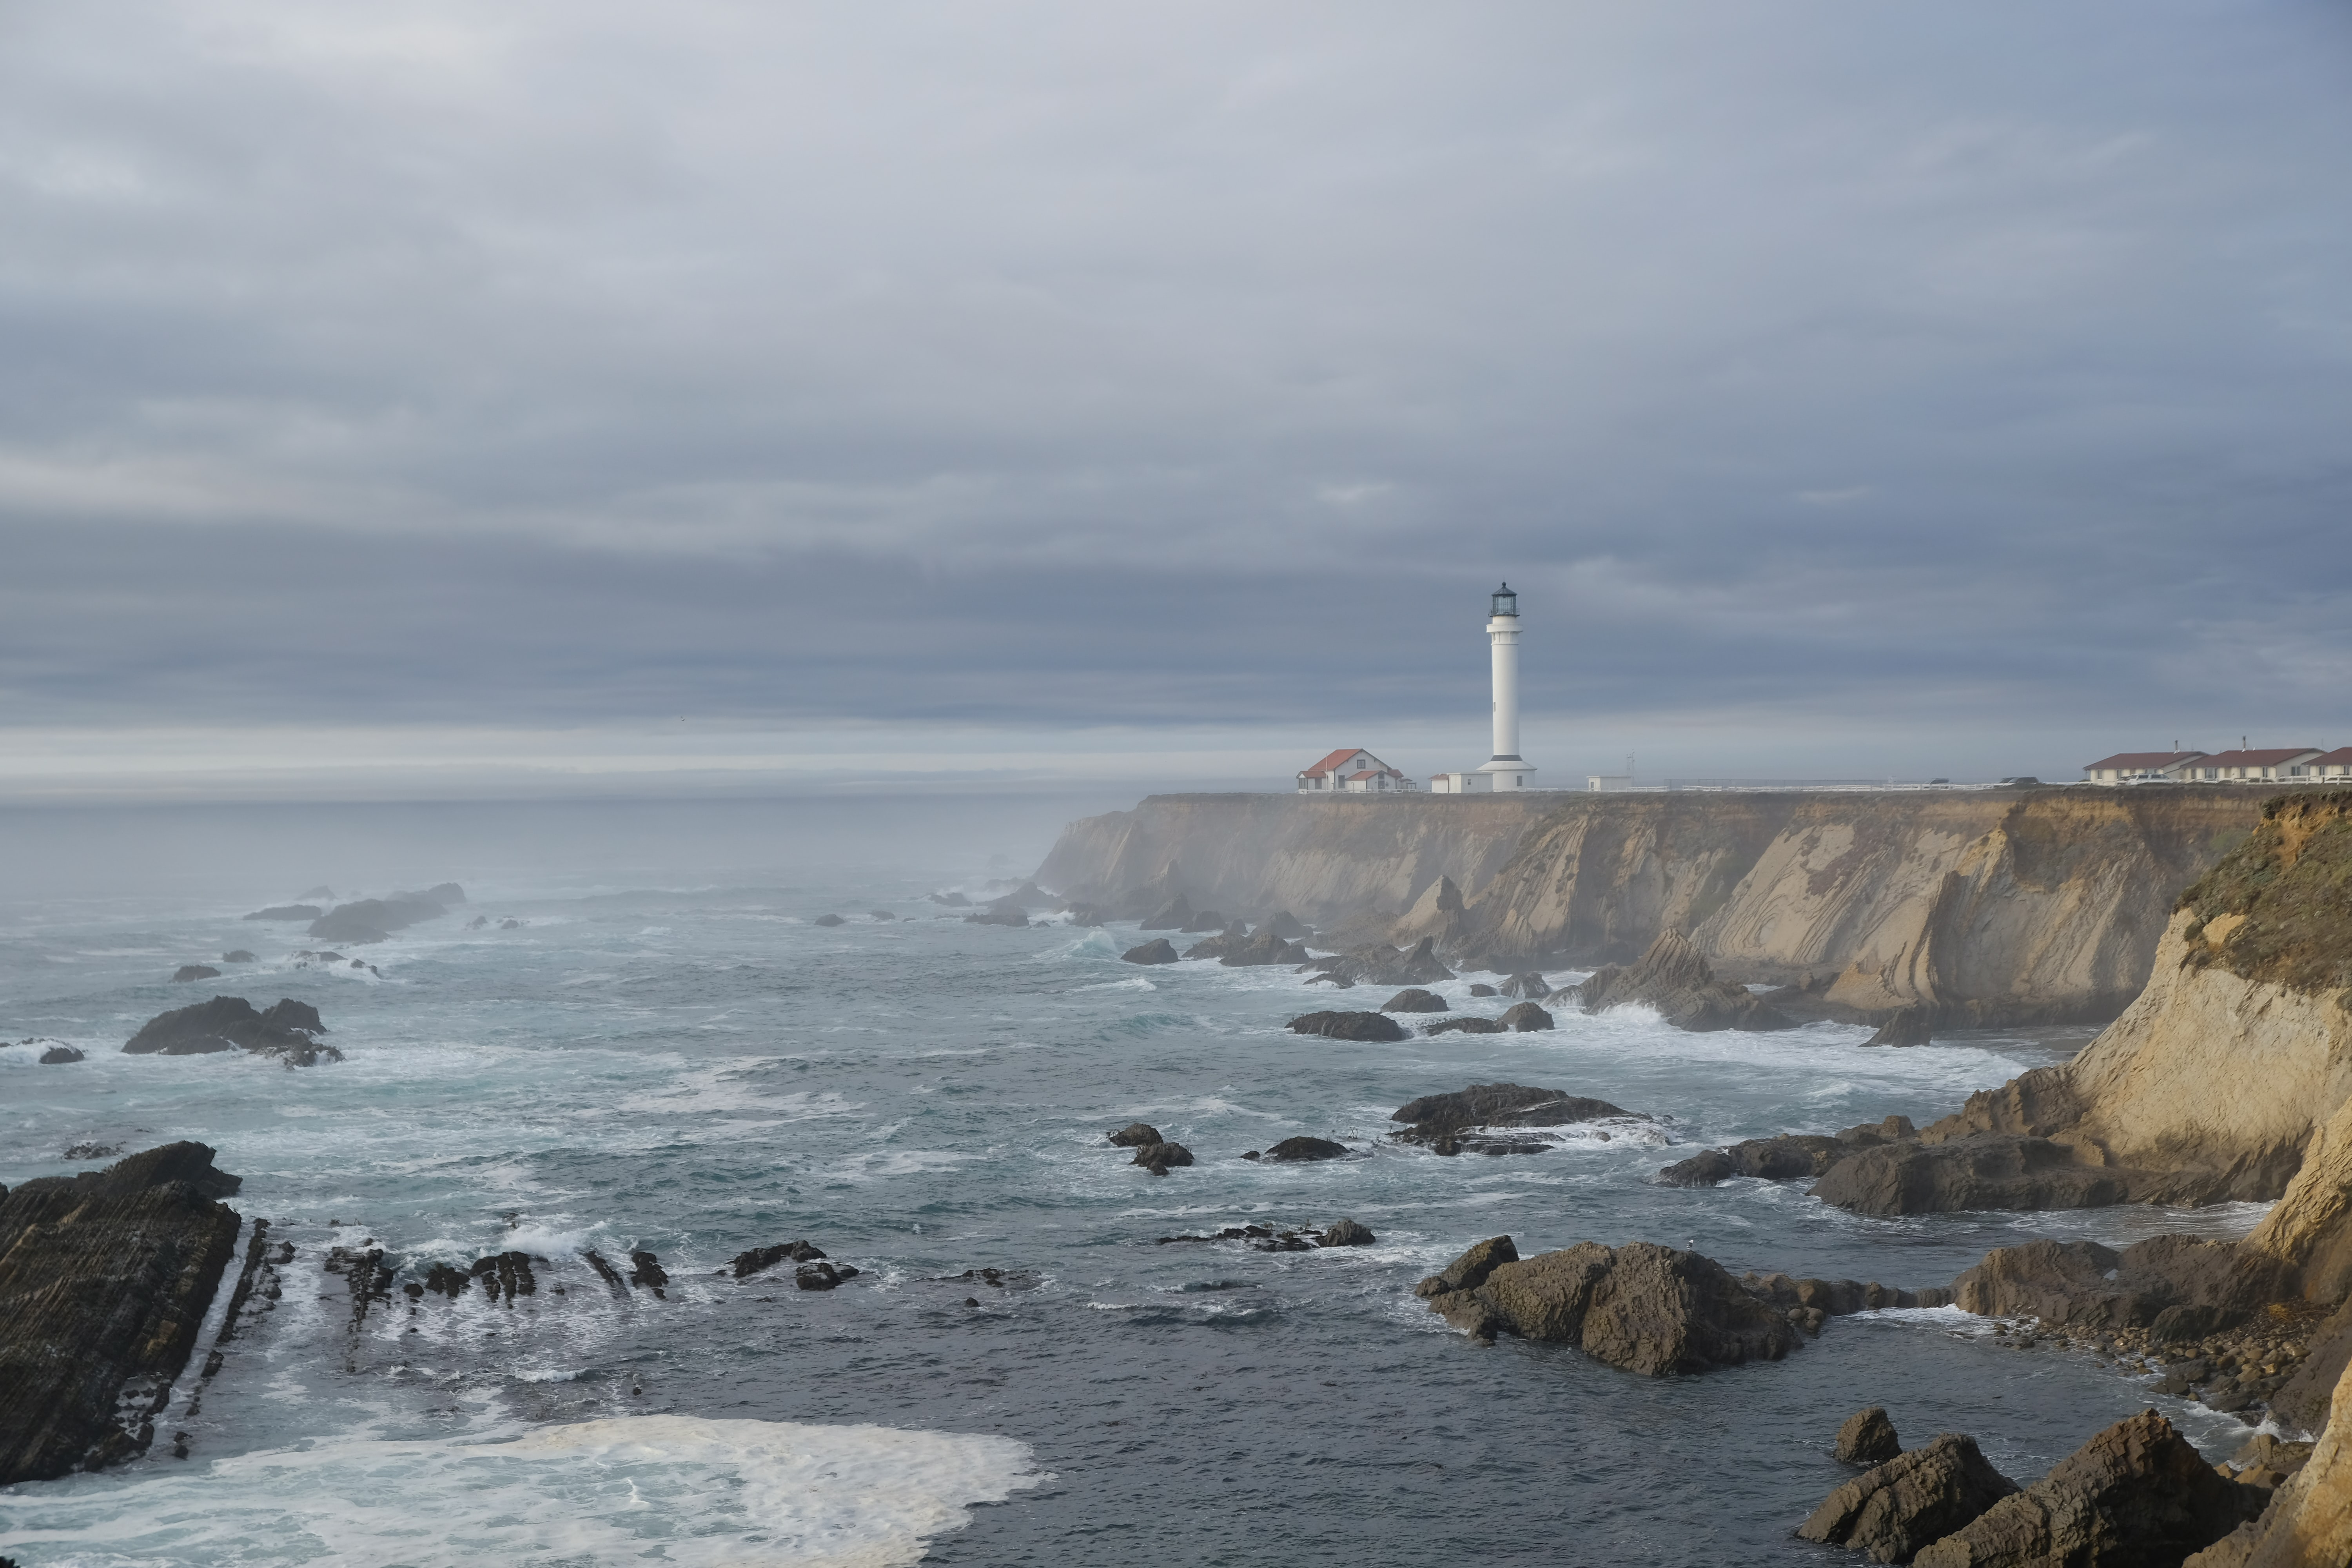 white lighthouse on shore under gray clouds at daytime